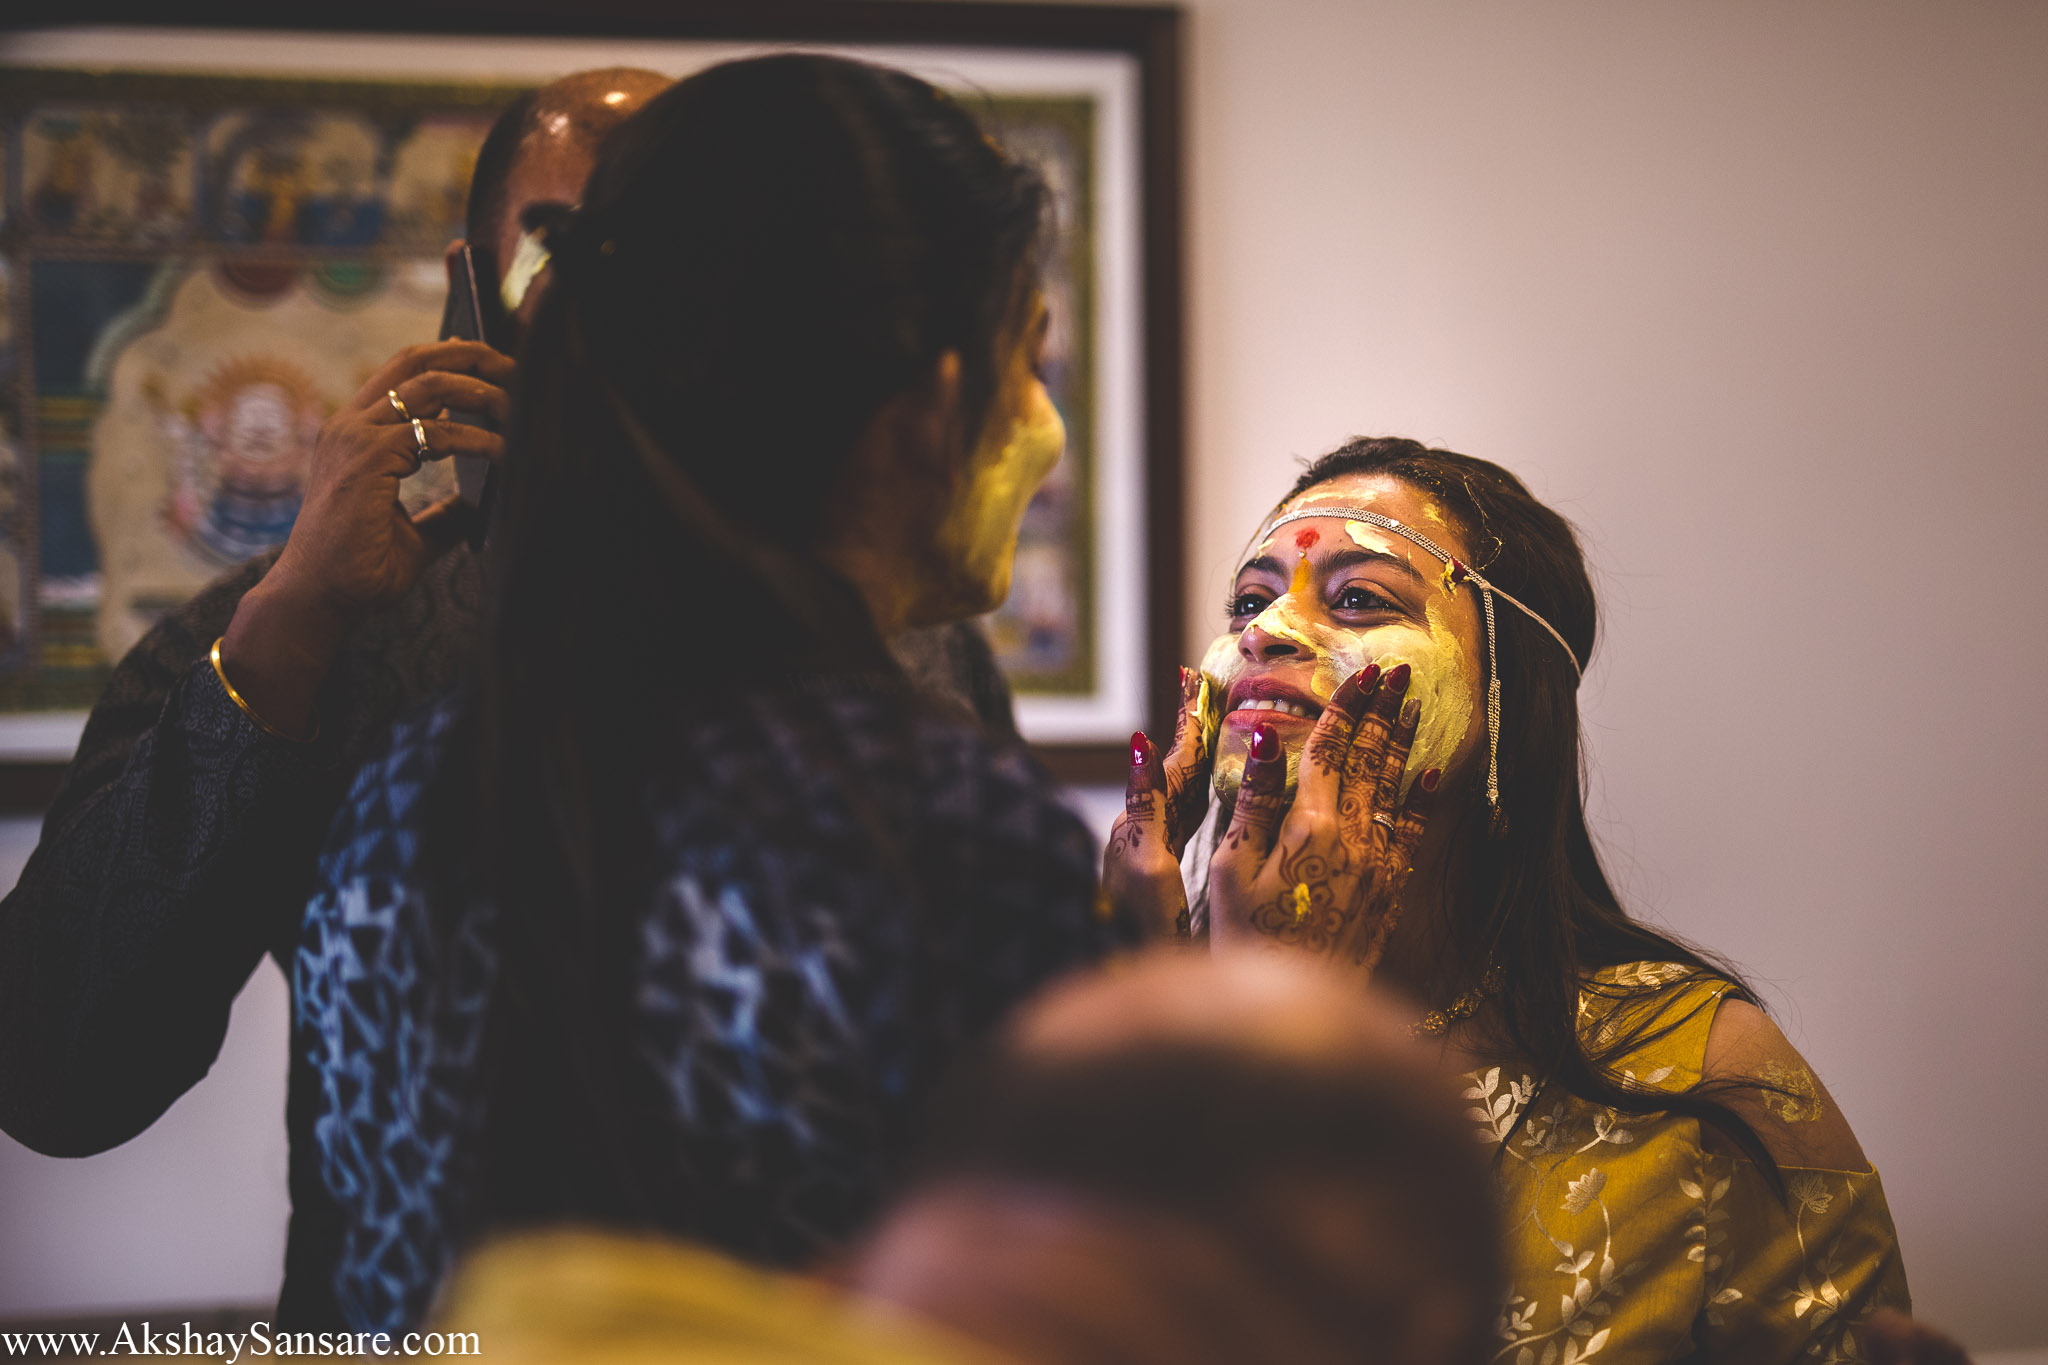 Ajay & Devika Akshay Sansare Photography Best Candid wedding photographer in mumbai india2.jpg